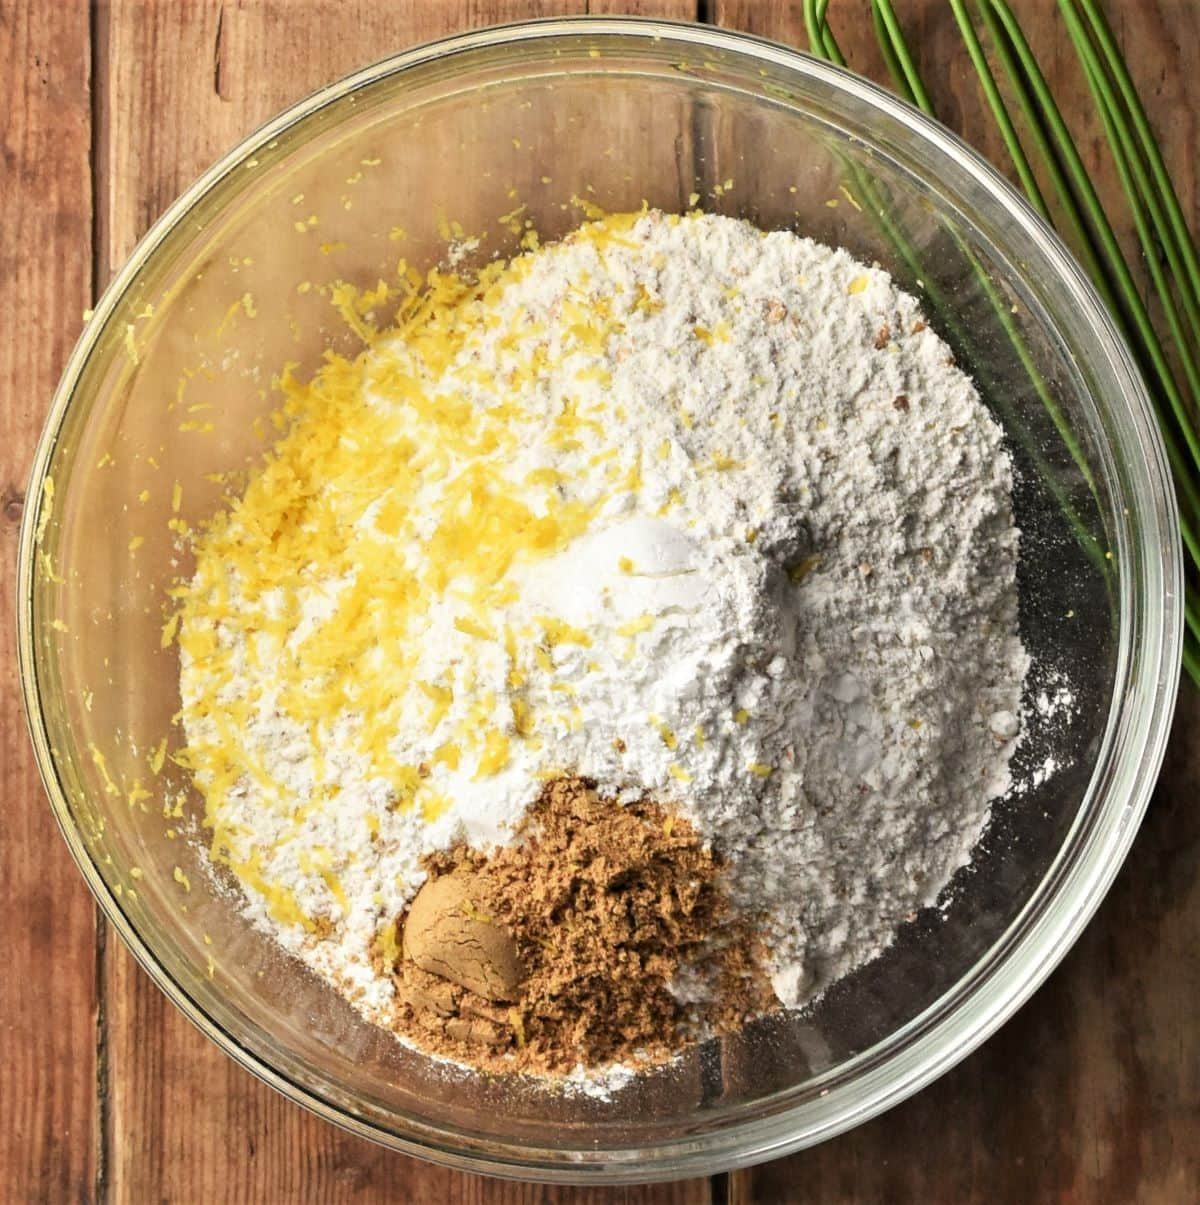 Dry mixture with spice and lemon zest for making beetroot bread.